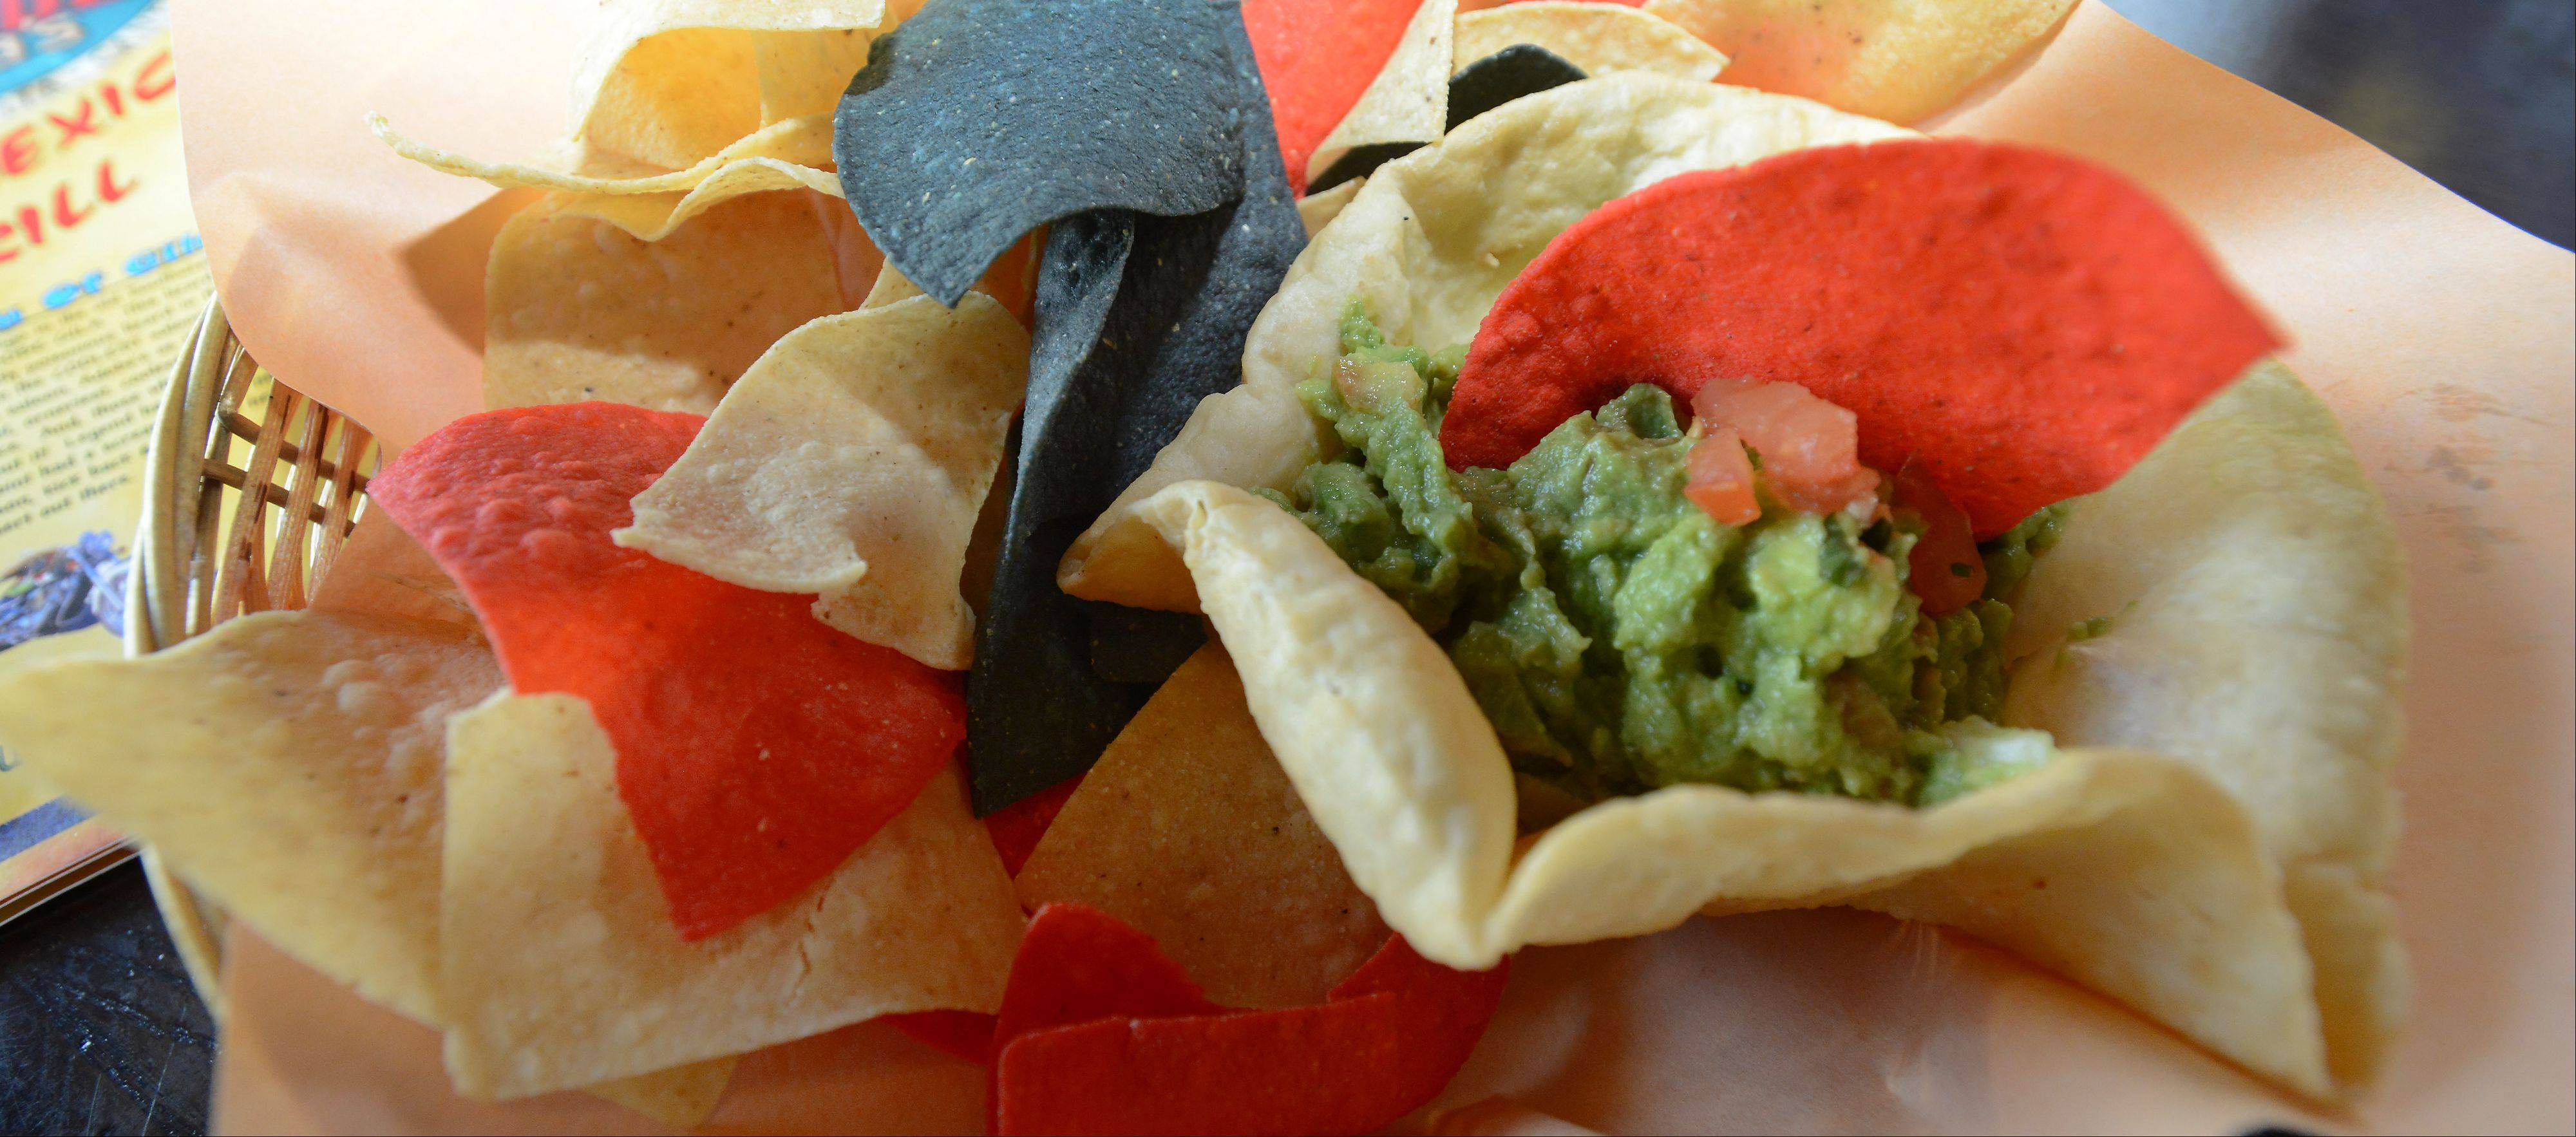 Avocados are smashed by hand to make Adobe Gila's traditional guacamole.